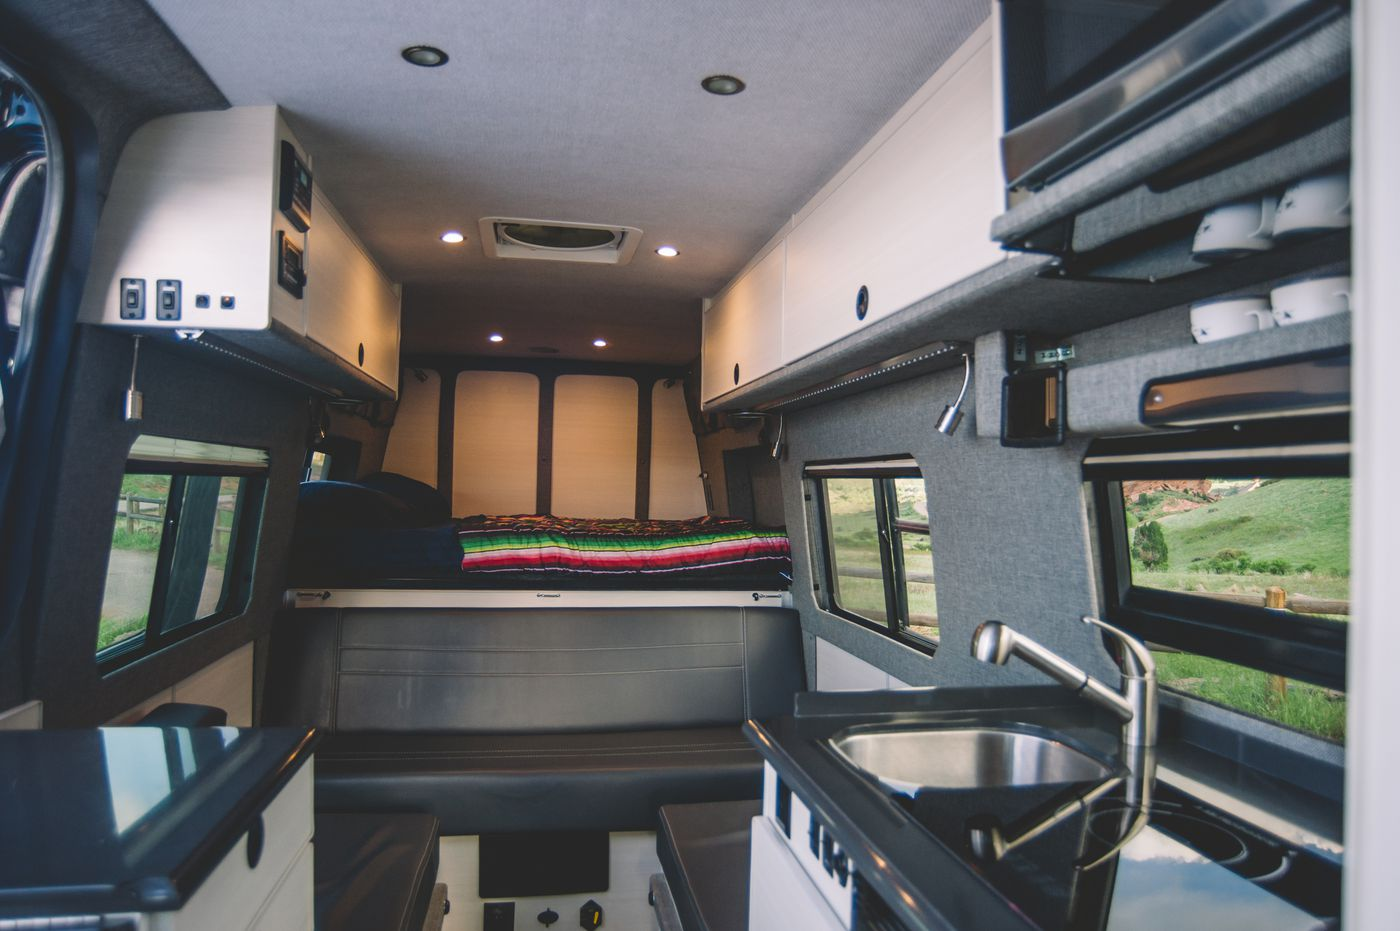 RV toilets: Why I'll never have a bathroom in my camper - Curbed